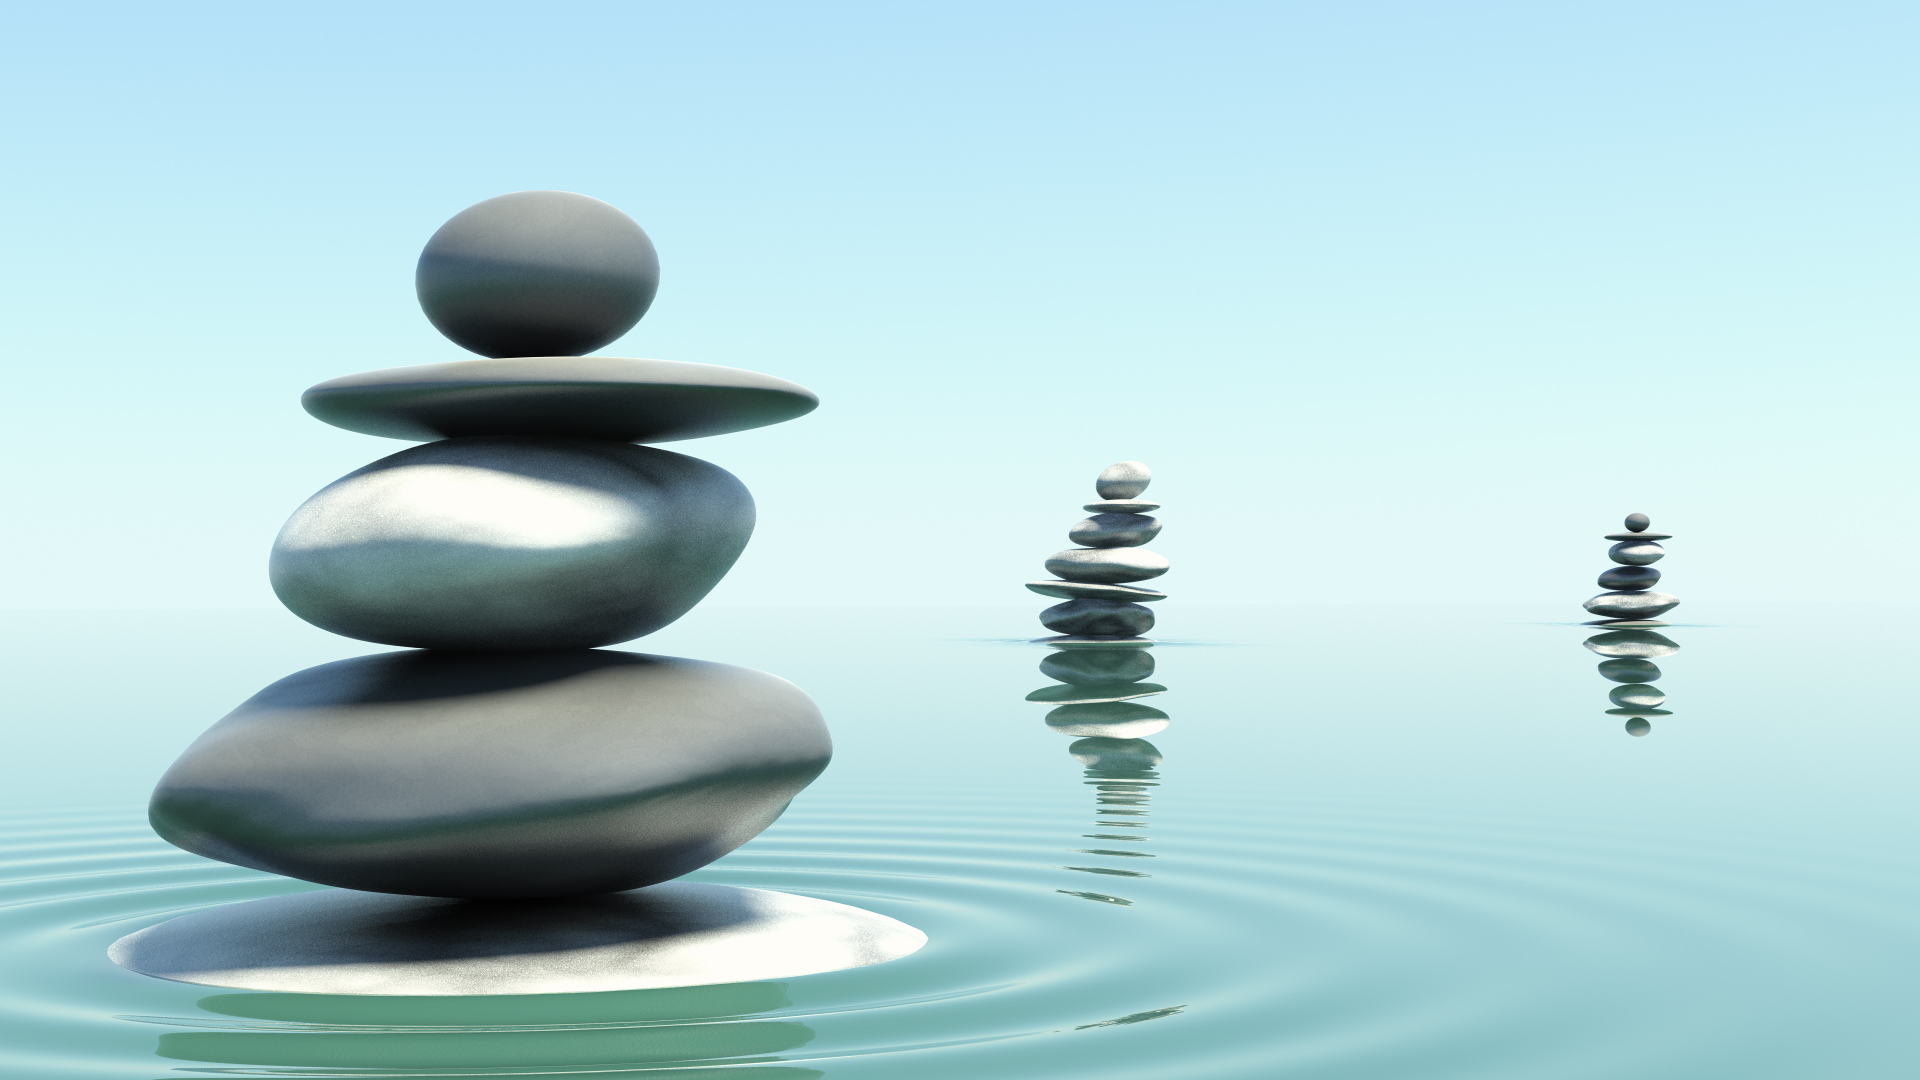 Zen Stones In Water Photographic Print By Fphotos At AllPosters Spirale Stone HD Desktop Wallpaper High